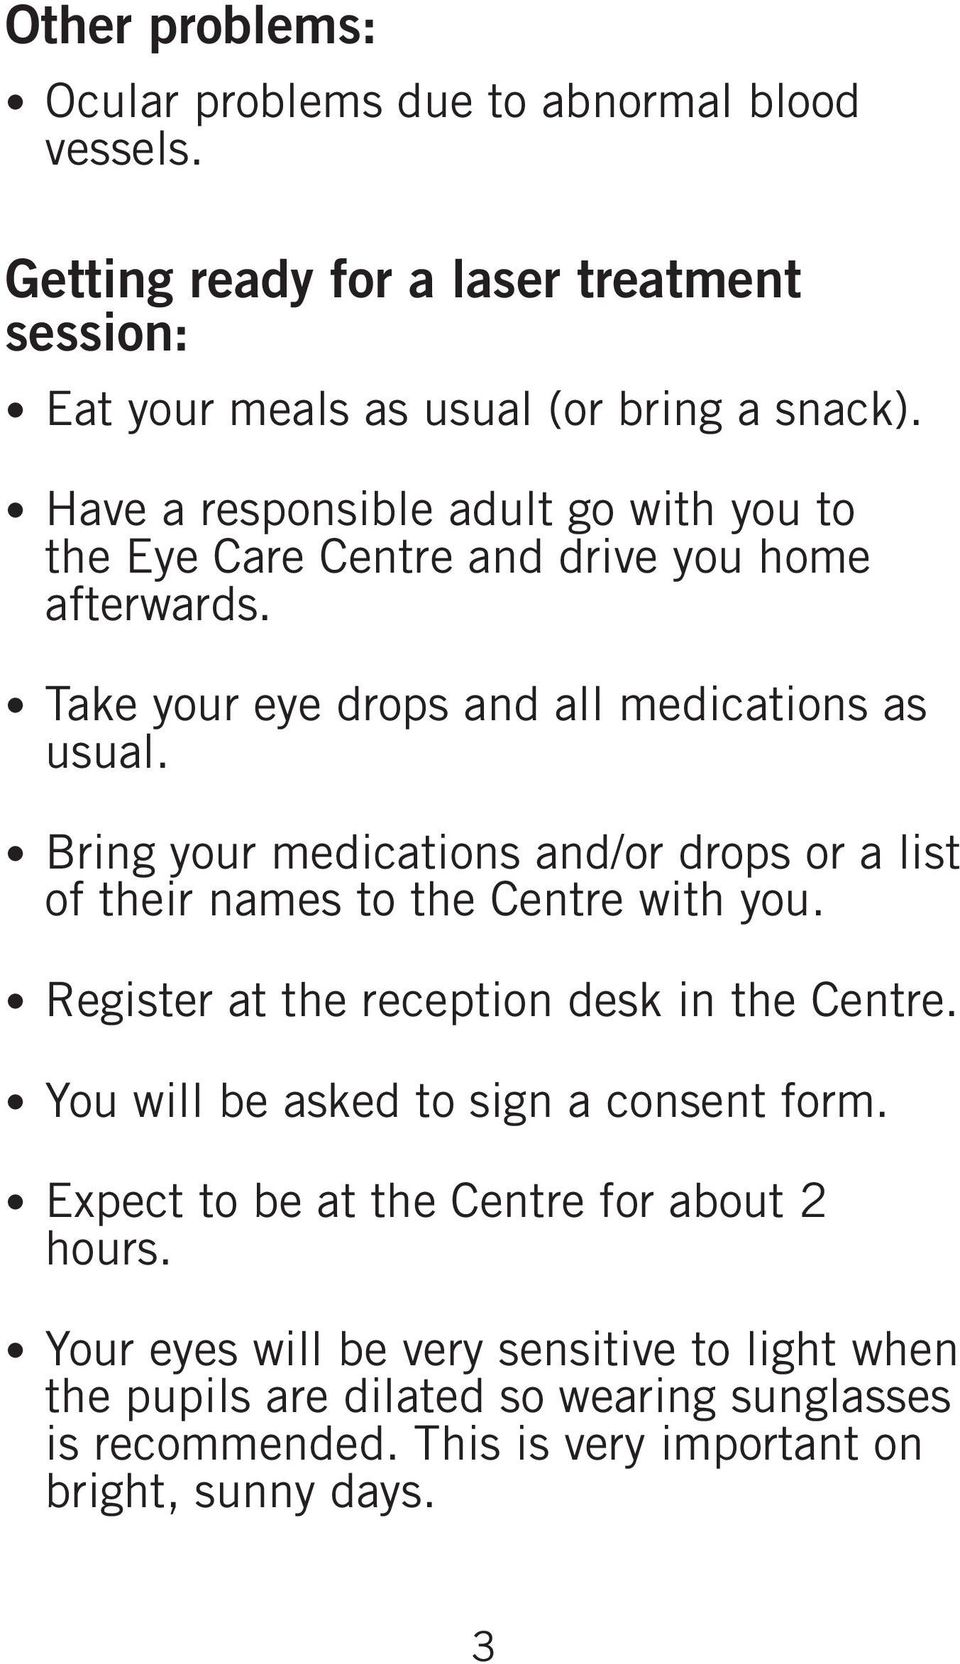 Bring your medications and/or drops or a list of their names to the Centre with you. Register at the reception desk in the Centre.